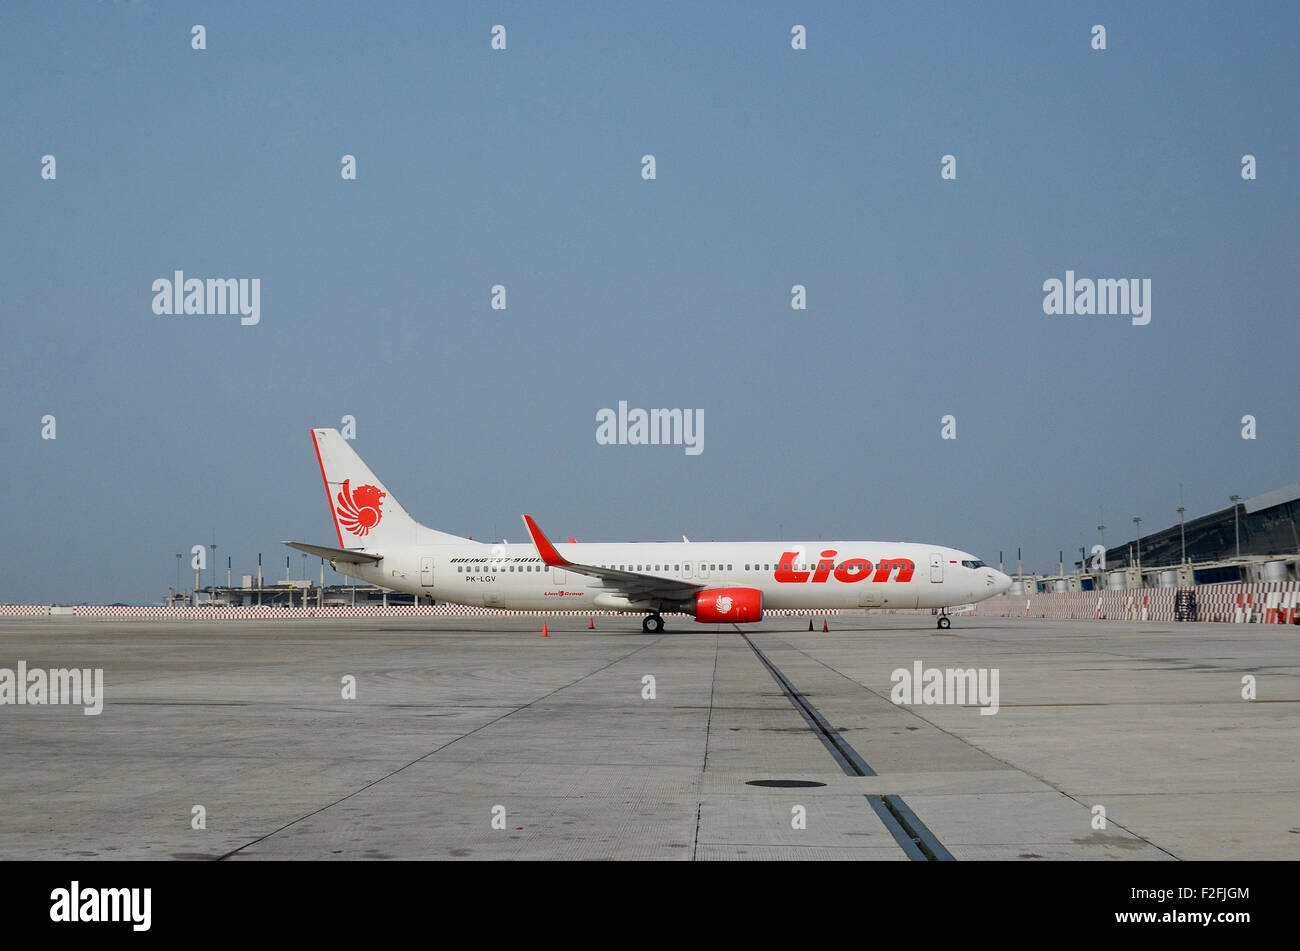 indonesia Airlines, Lion Air twin jet Boeing 737-900 ER - Stock Image